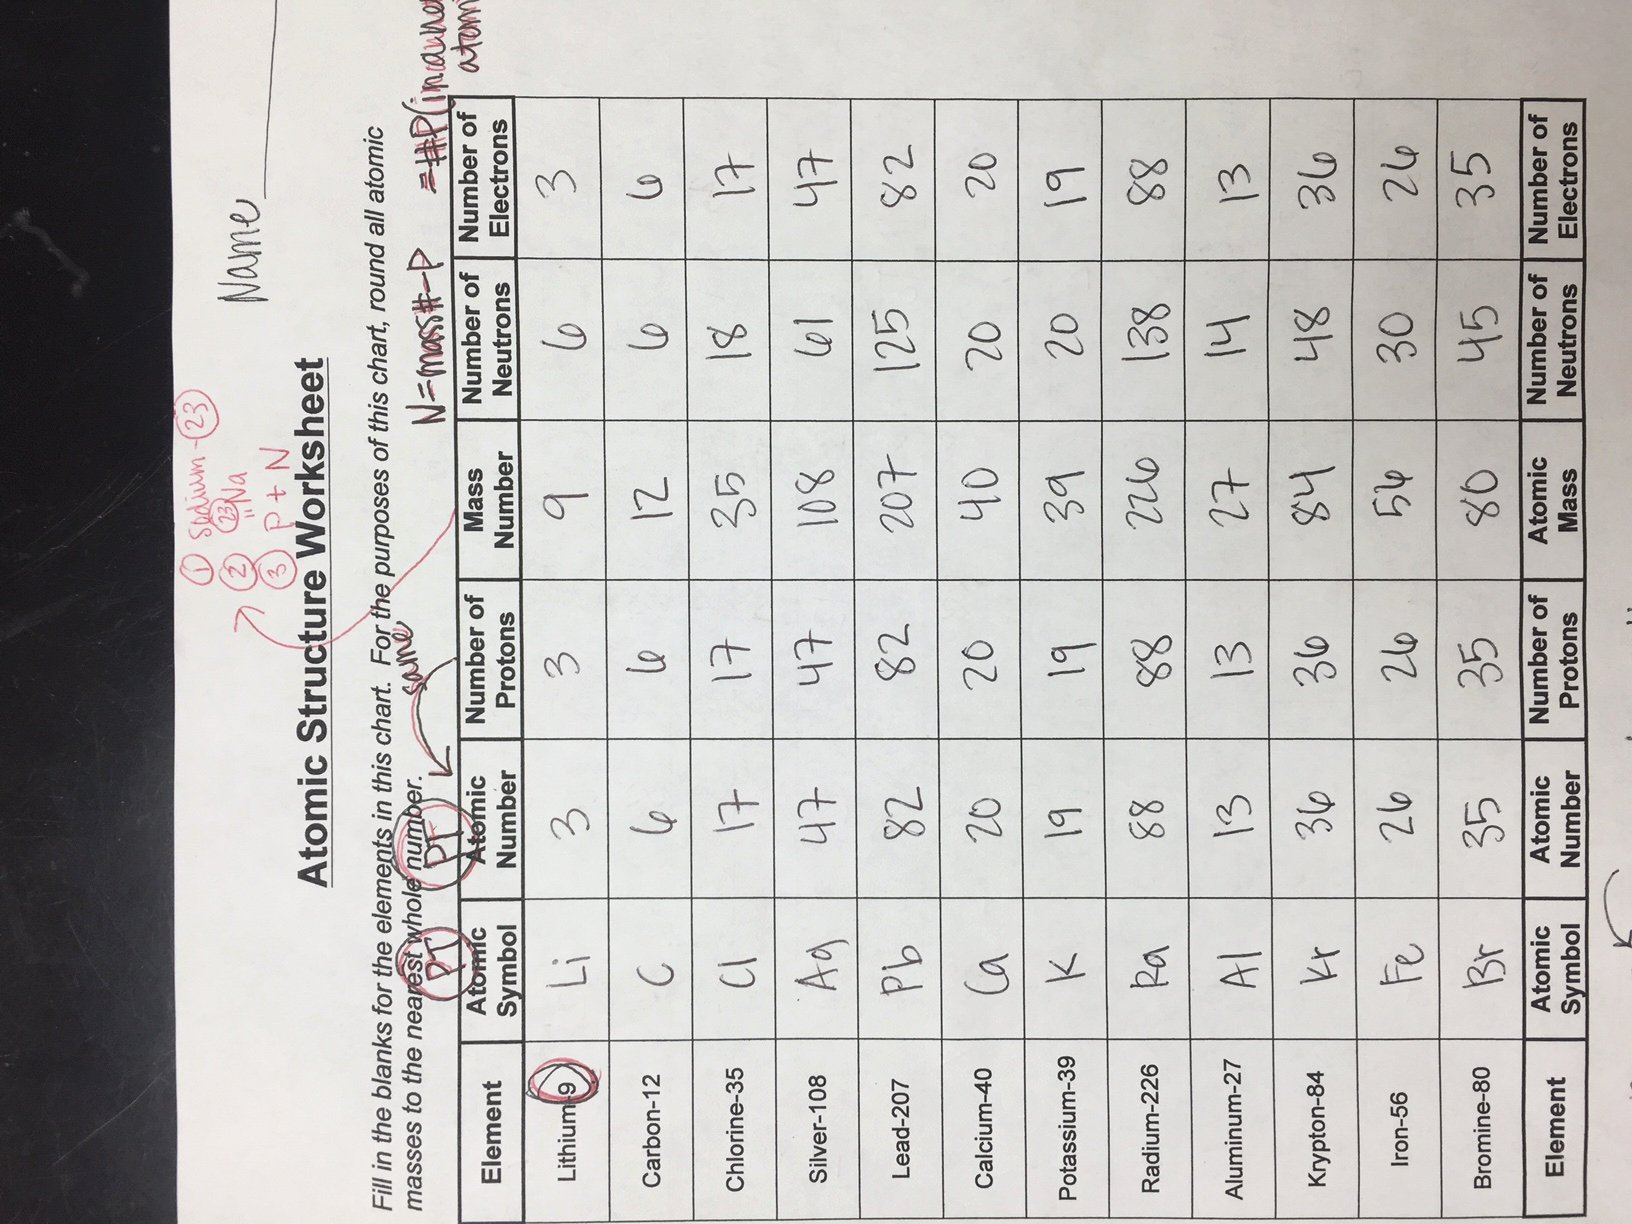 Atoms and Ions Worksheet Answers Unique Unit 2 atomic Structure Ms Holl S Physical Science Class